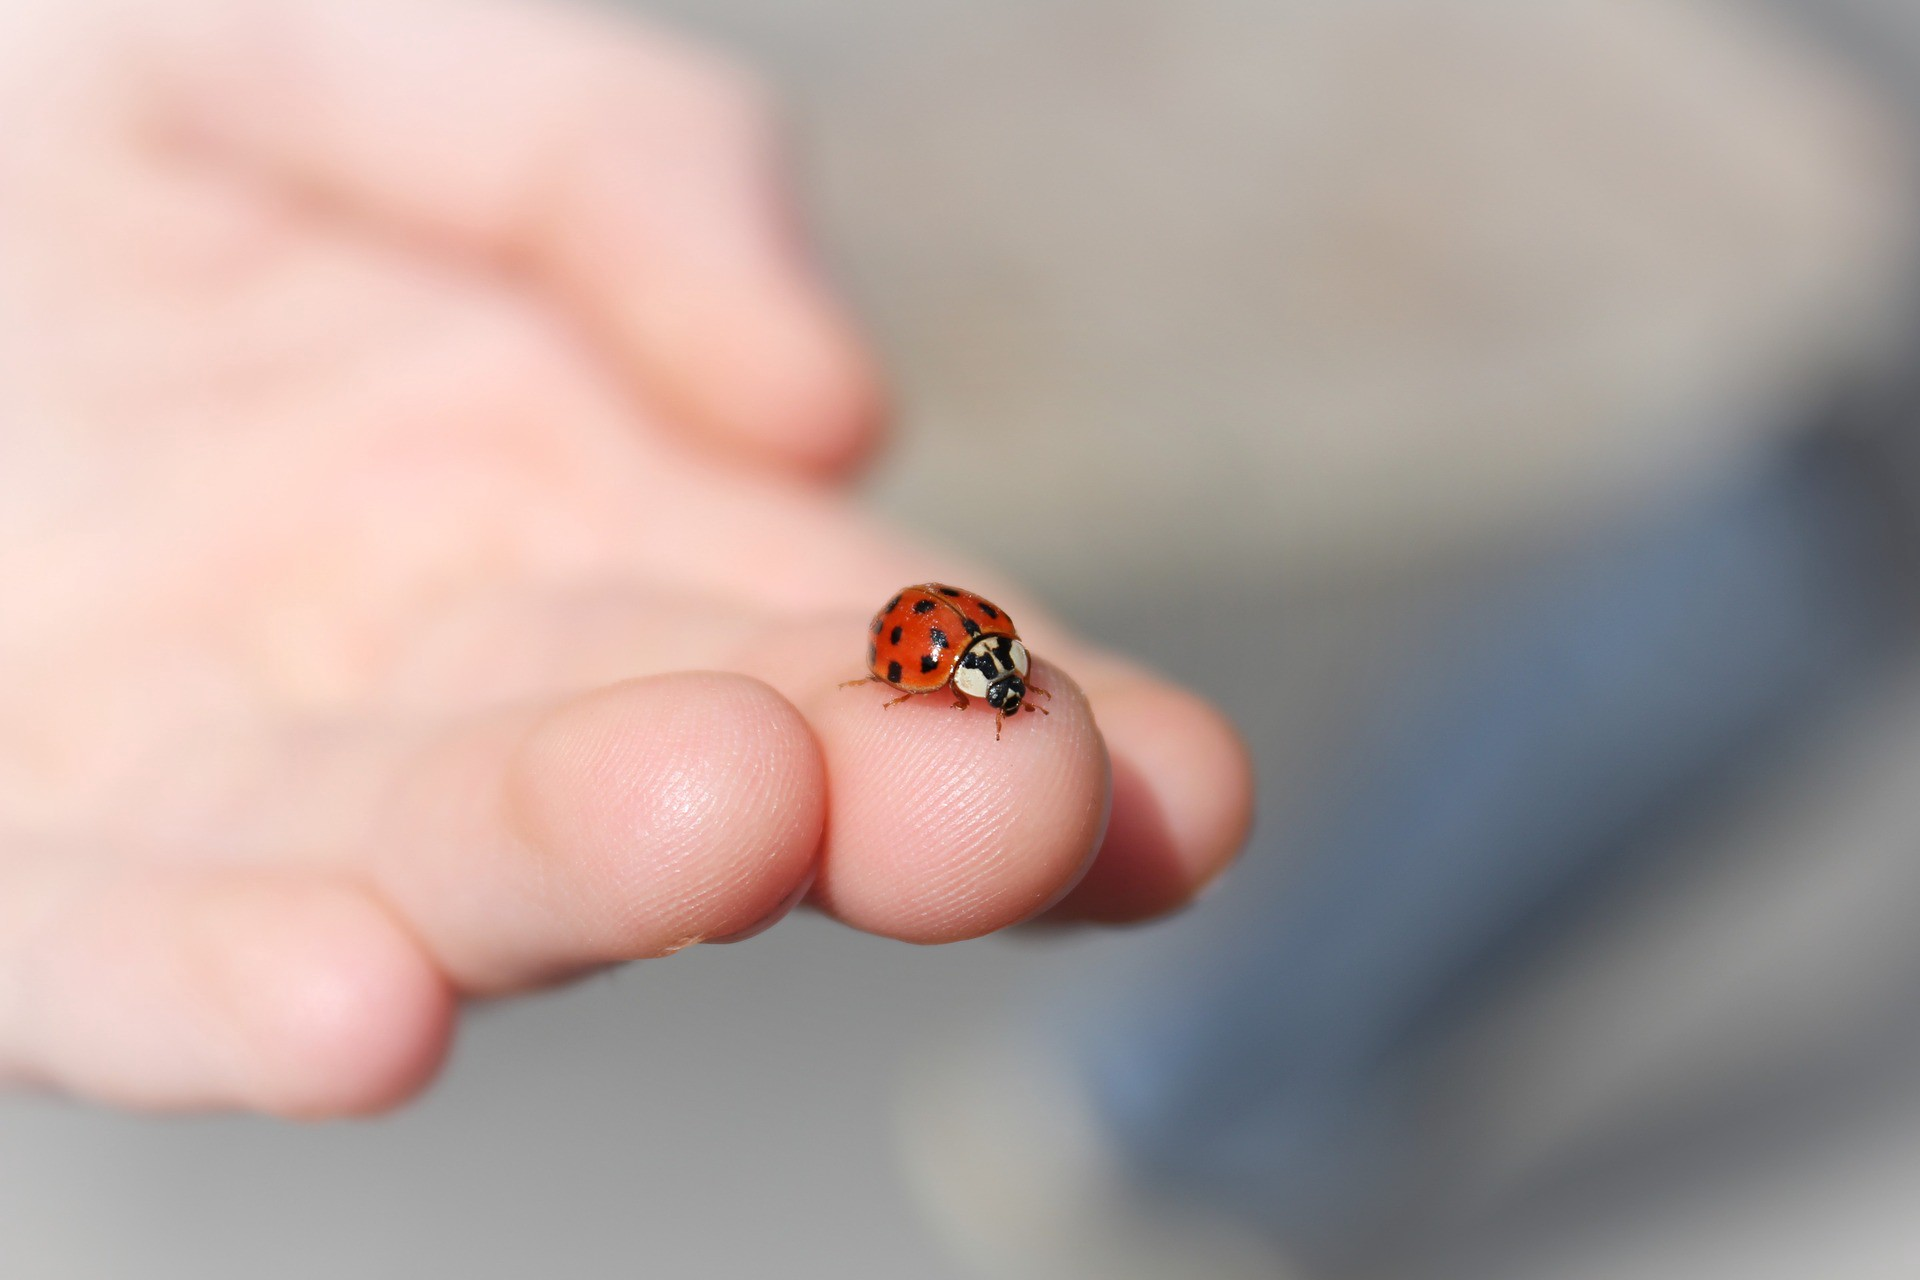 An outstretched hand with a ladybird on the tip of the middle finger.